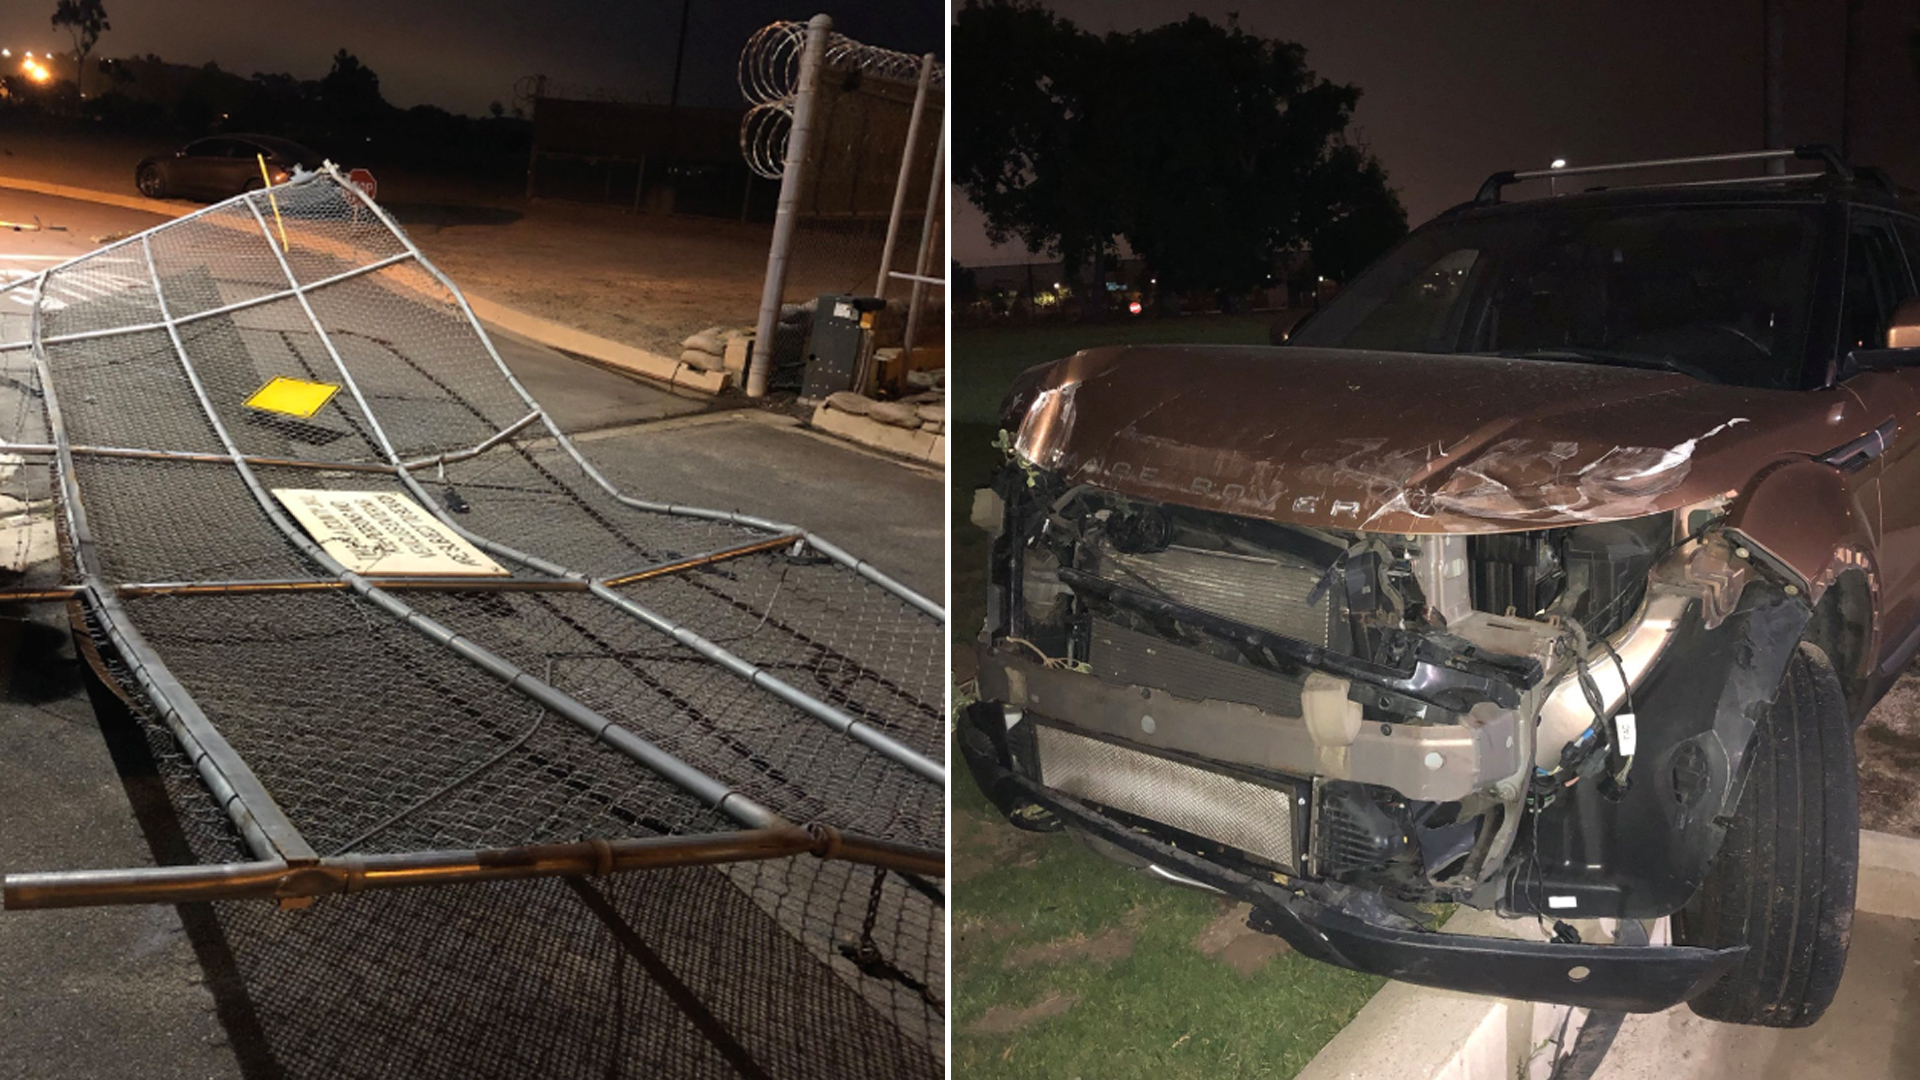 The scene of a crash outside the James A. Musick jail facility near Irvine on July 29, 2019. (Credit: Orange County Sheriff's Department/ Twitter)